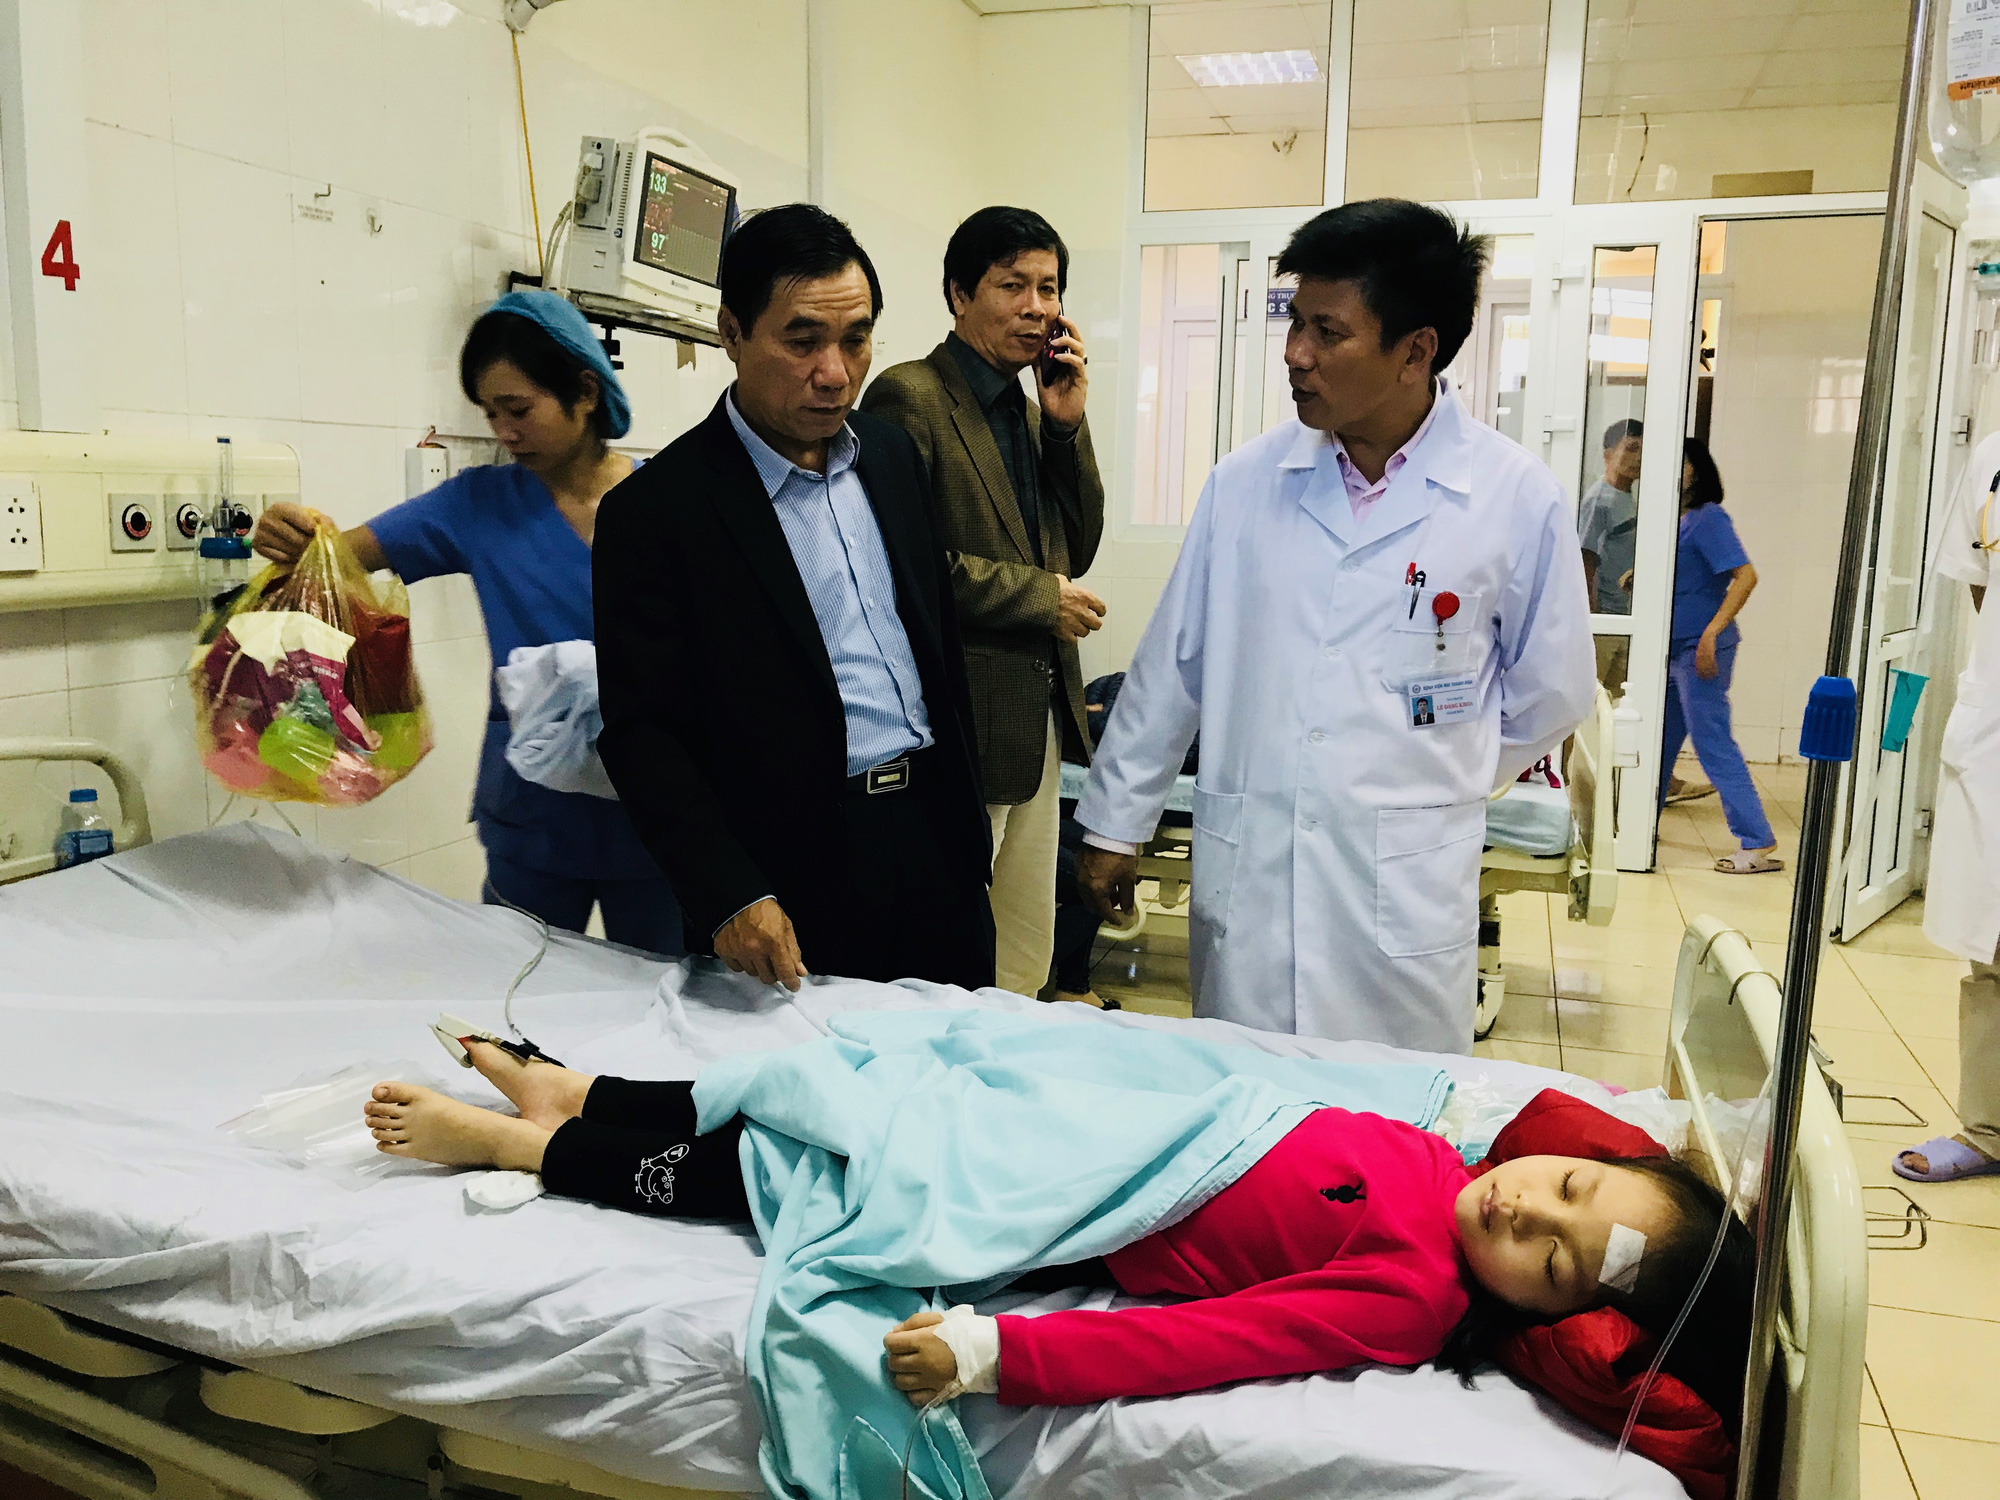 130 kindergarteners hospitalized for suspected food poisoning in Vietnam